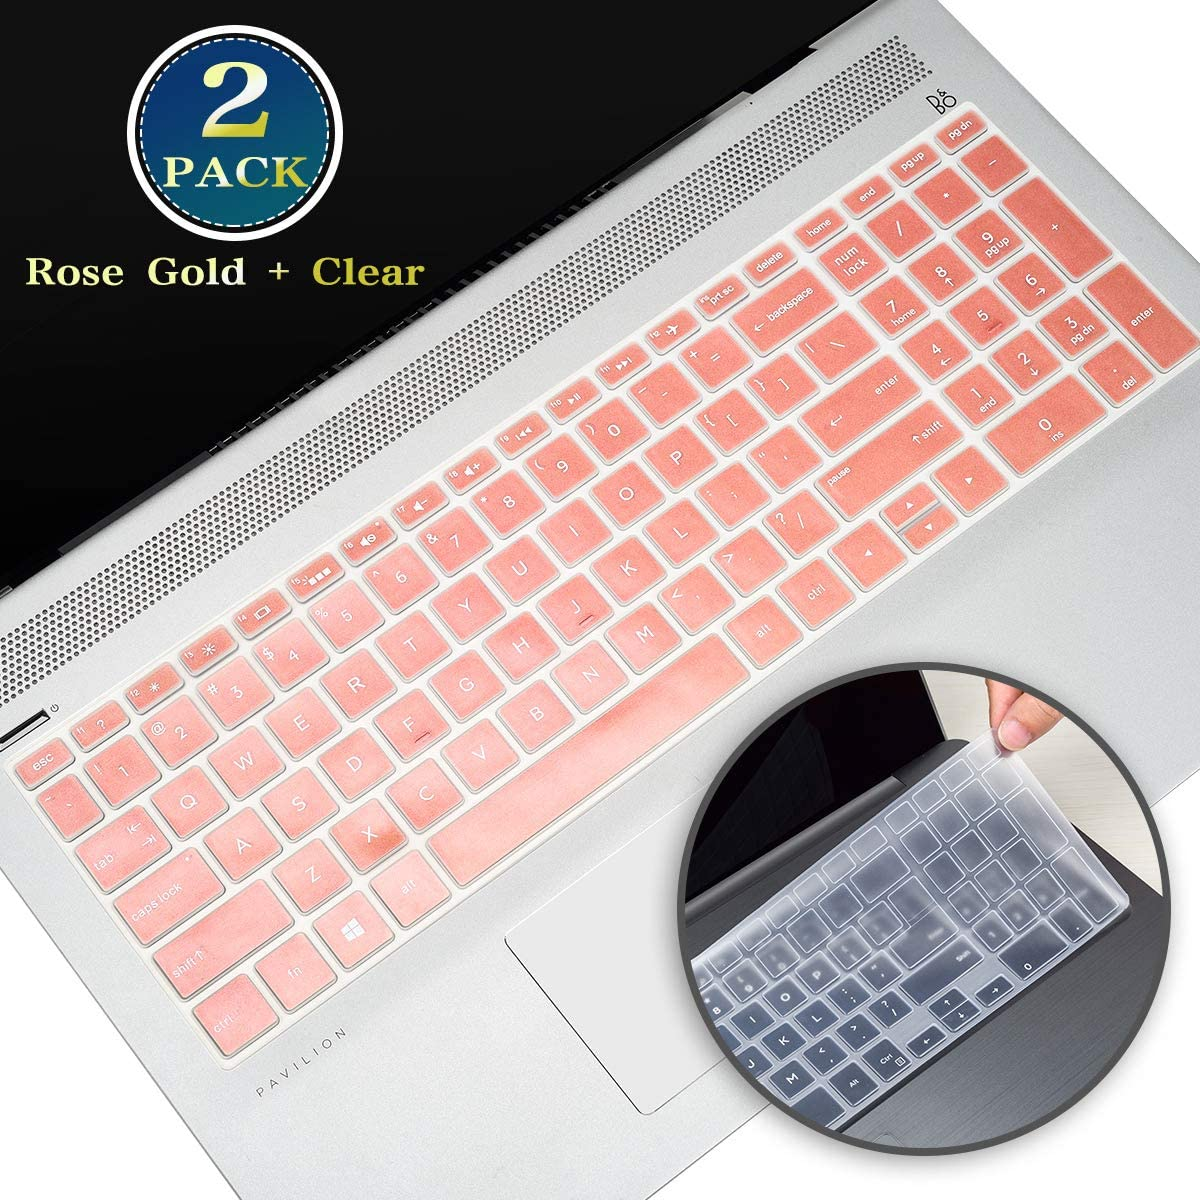 for HP Envy 15.6 Keyboard Cover 2020, Silicone Keyboard Skin for HP Pavilion 15.6/HP Pavilion 15 Series, HP Envy x360 15.6 17.3 Series,HP Spectre x360 15-ch(Rose Gold+Clear)